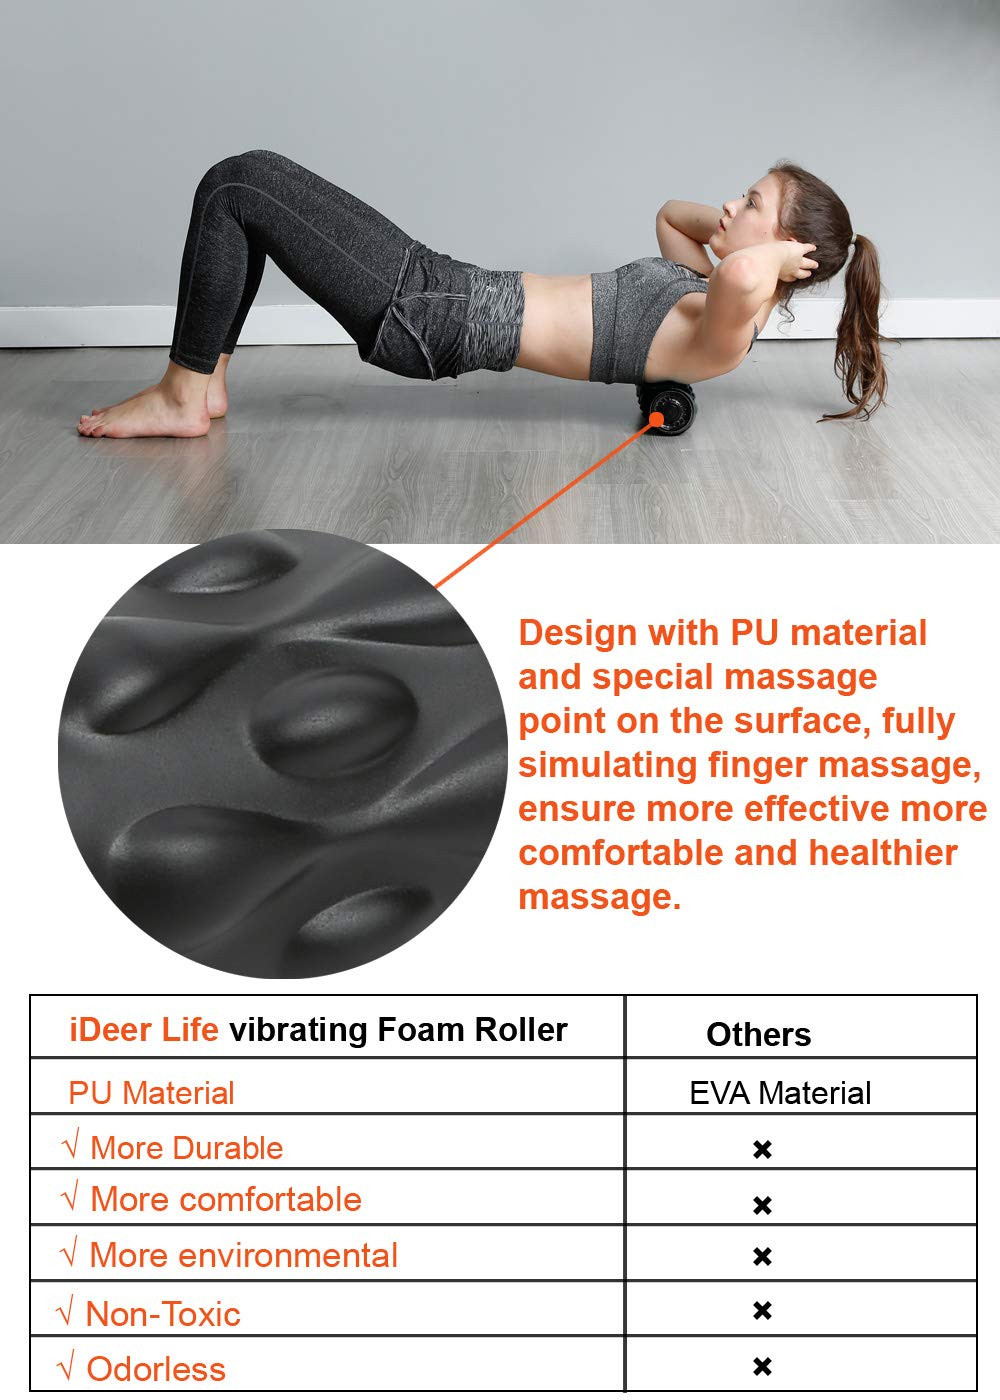 iDeer Vibration Platform Fitness Vibration Plates,Whole Body Vibration Exercise Machine w/Remote Control &Bands,Anti-Slip Fit Massage Workout Trainer Max User Weight 330lbs (Black AUS09017) by IDEER LIFE (Image #4)